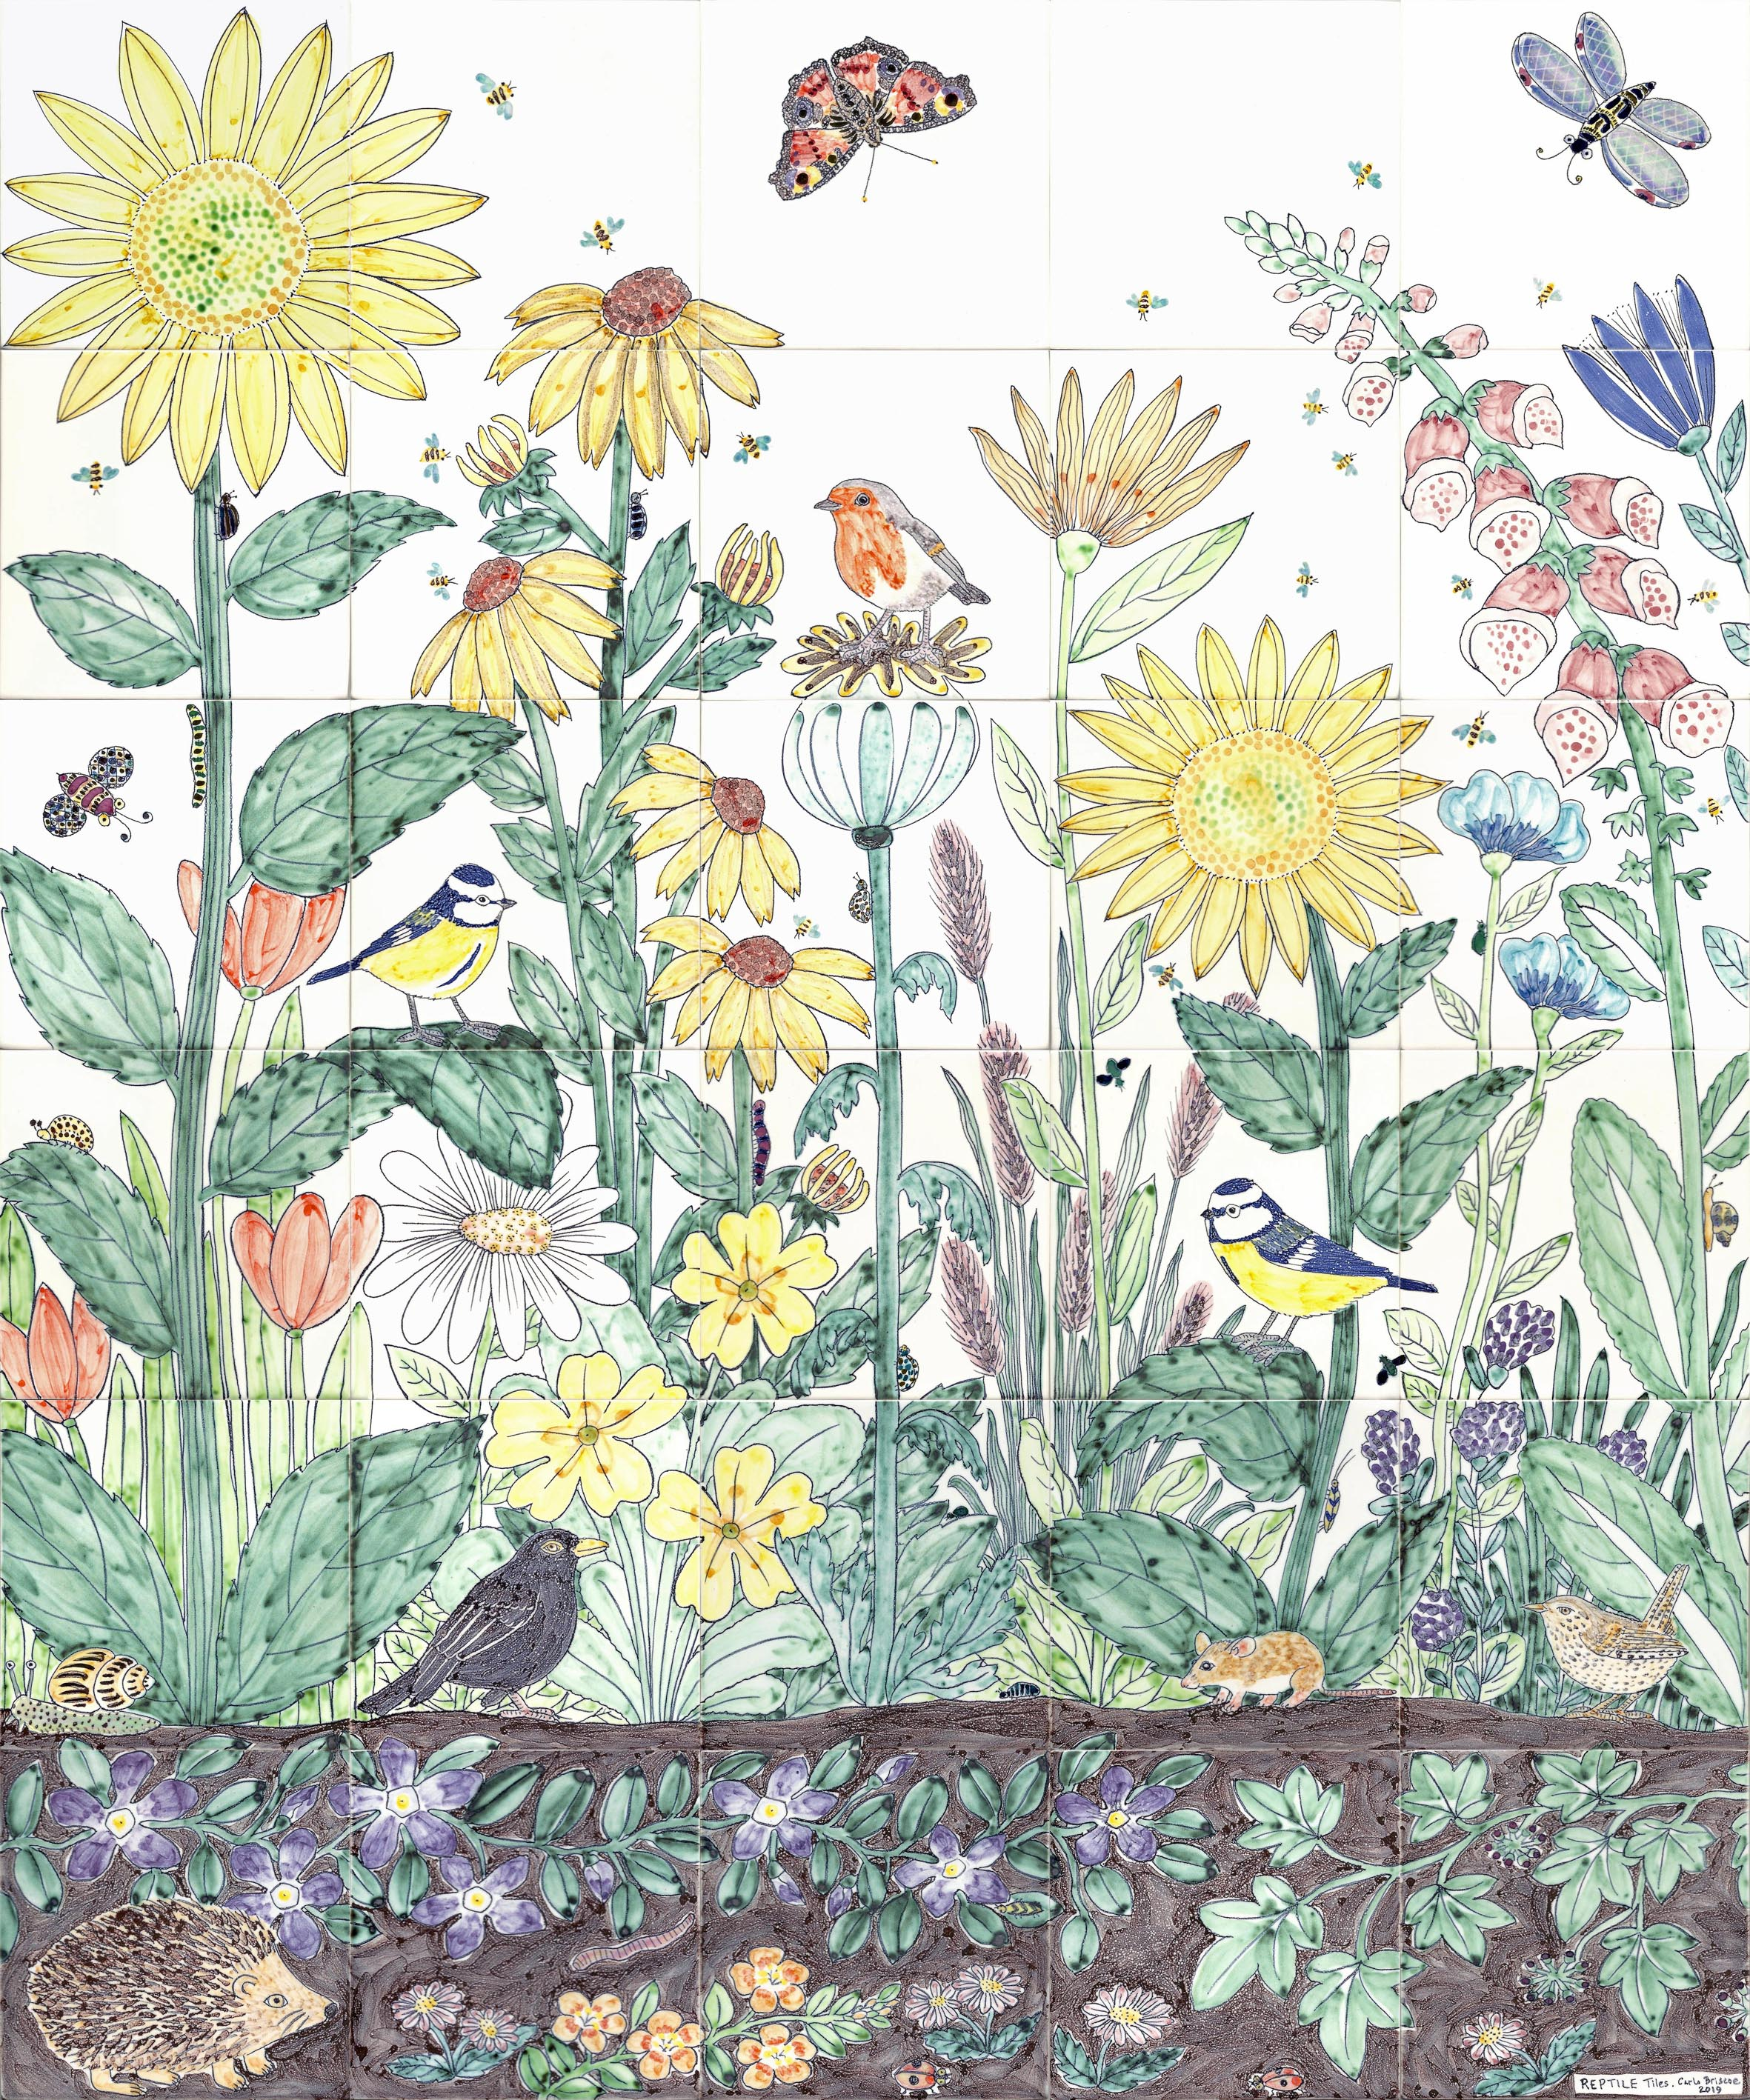 Flower and bird tiles